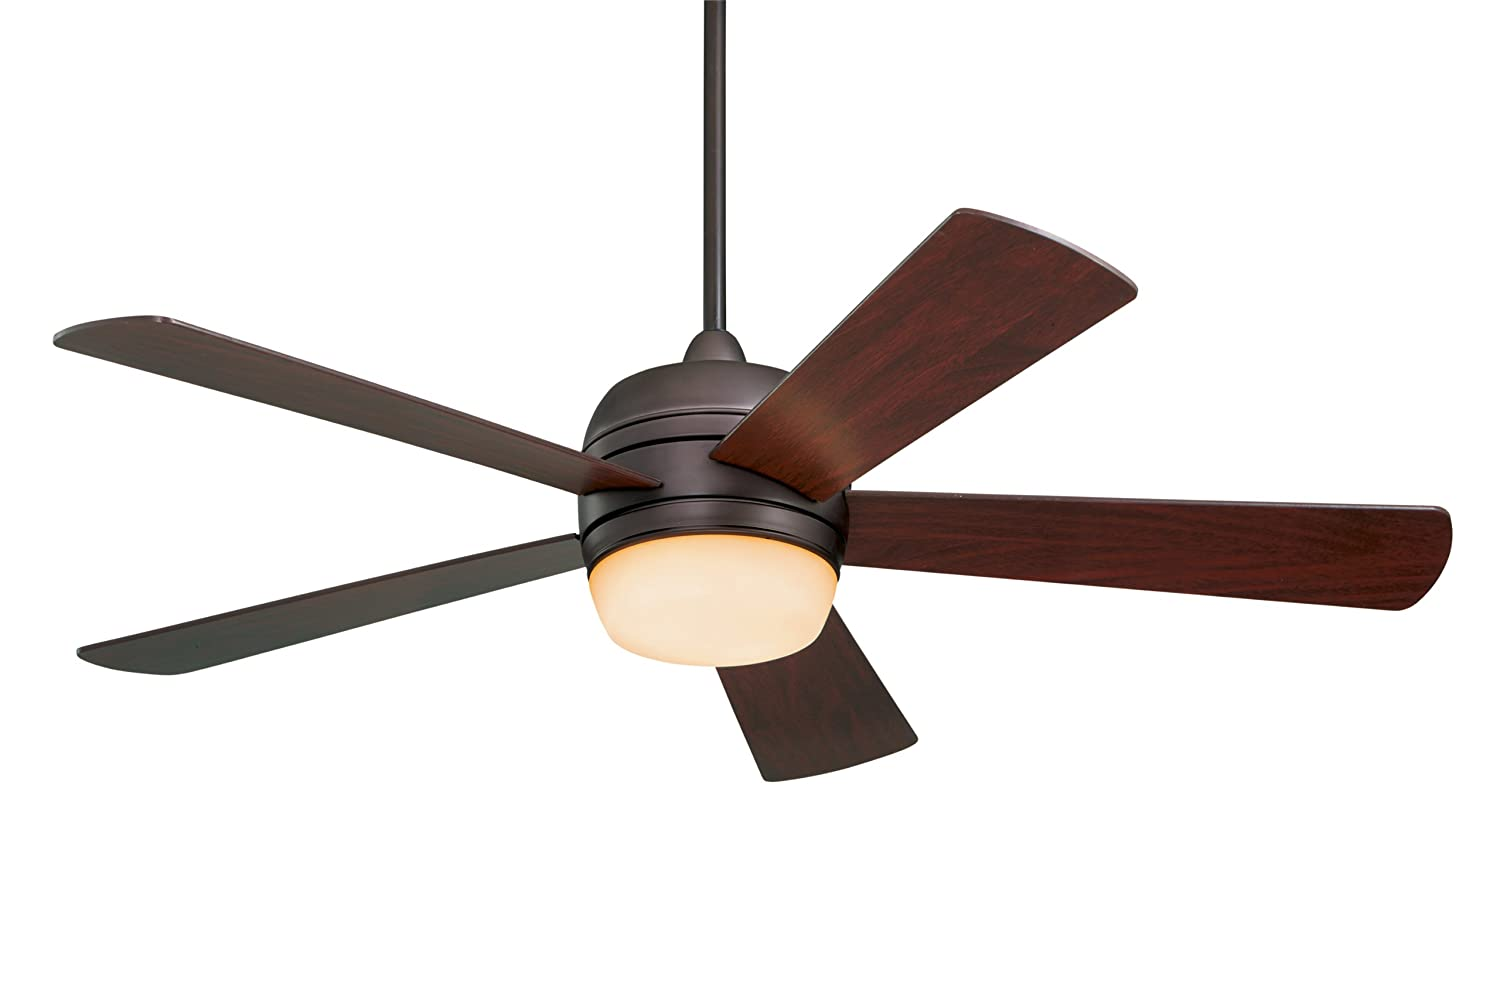 Emerson Ceiling Fans Cf930orb Atomical 52 Inch Modern Indoor Outdoor Fan With Light And Remote Damp Rated Oil Rubbed Bronze Finish